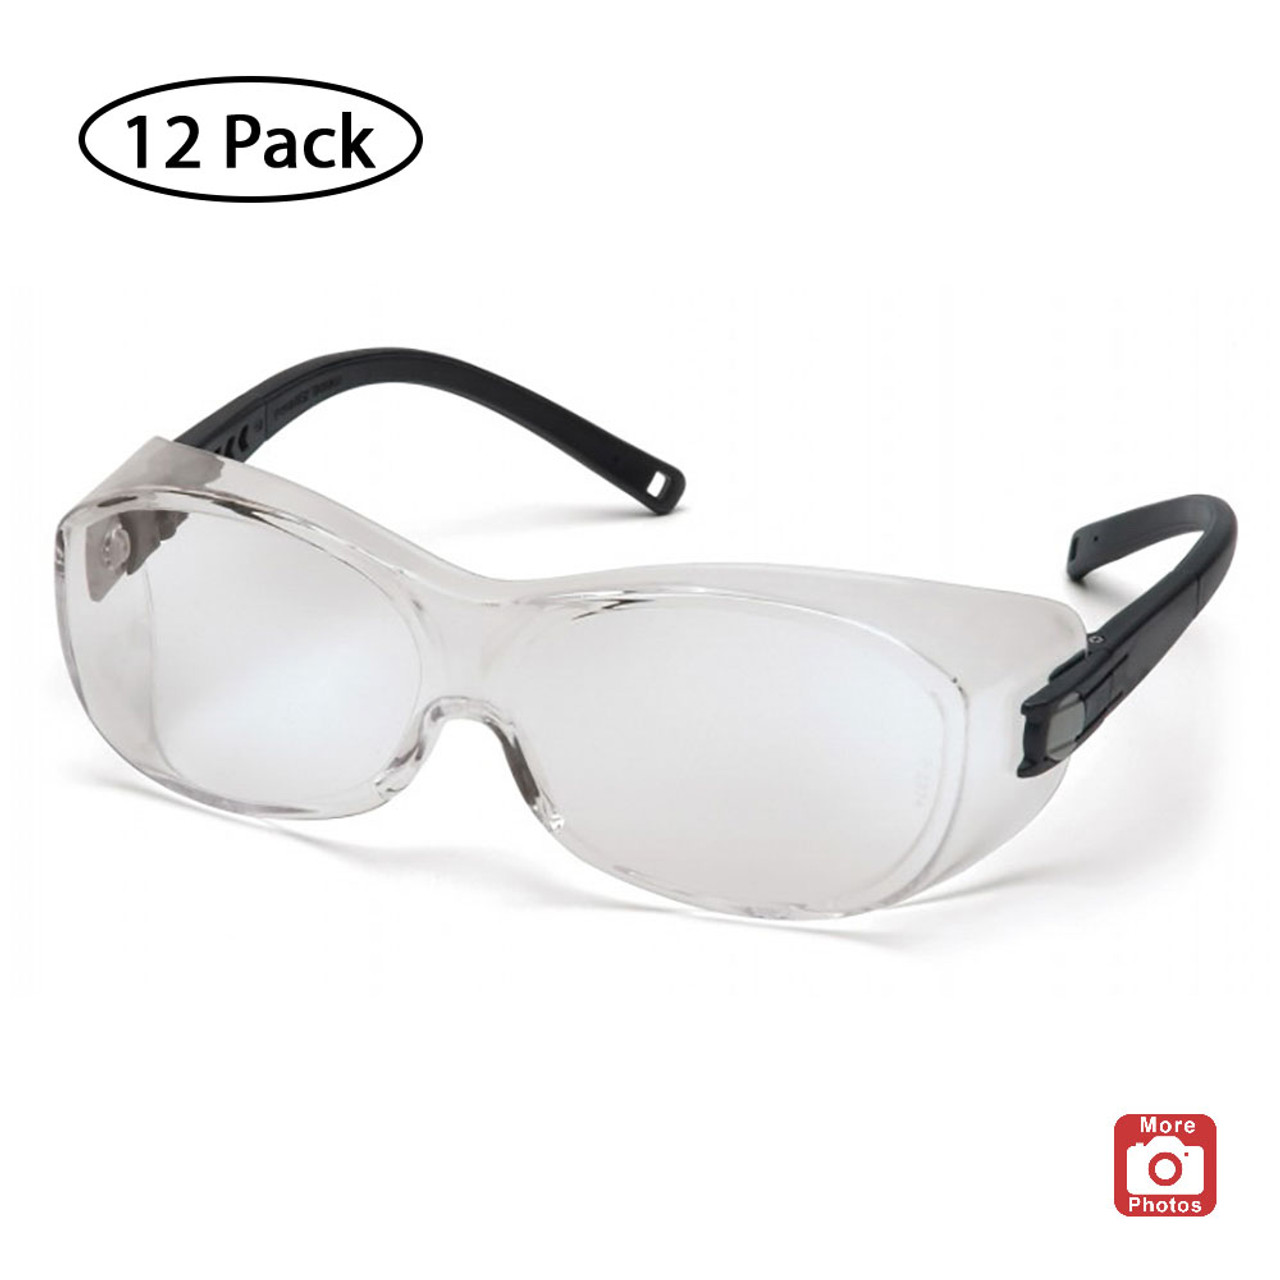 Pyramex OTS Series Safety Glasses with H2X Anti-Fog Lens, 12 Pack